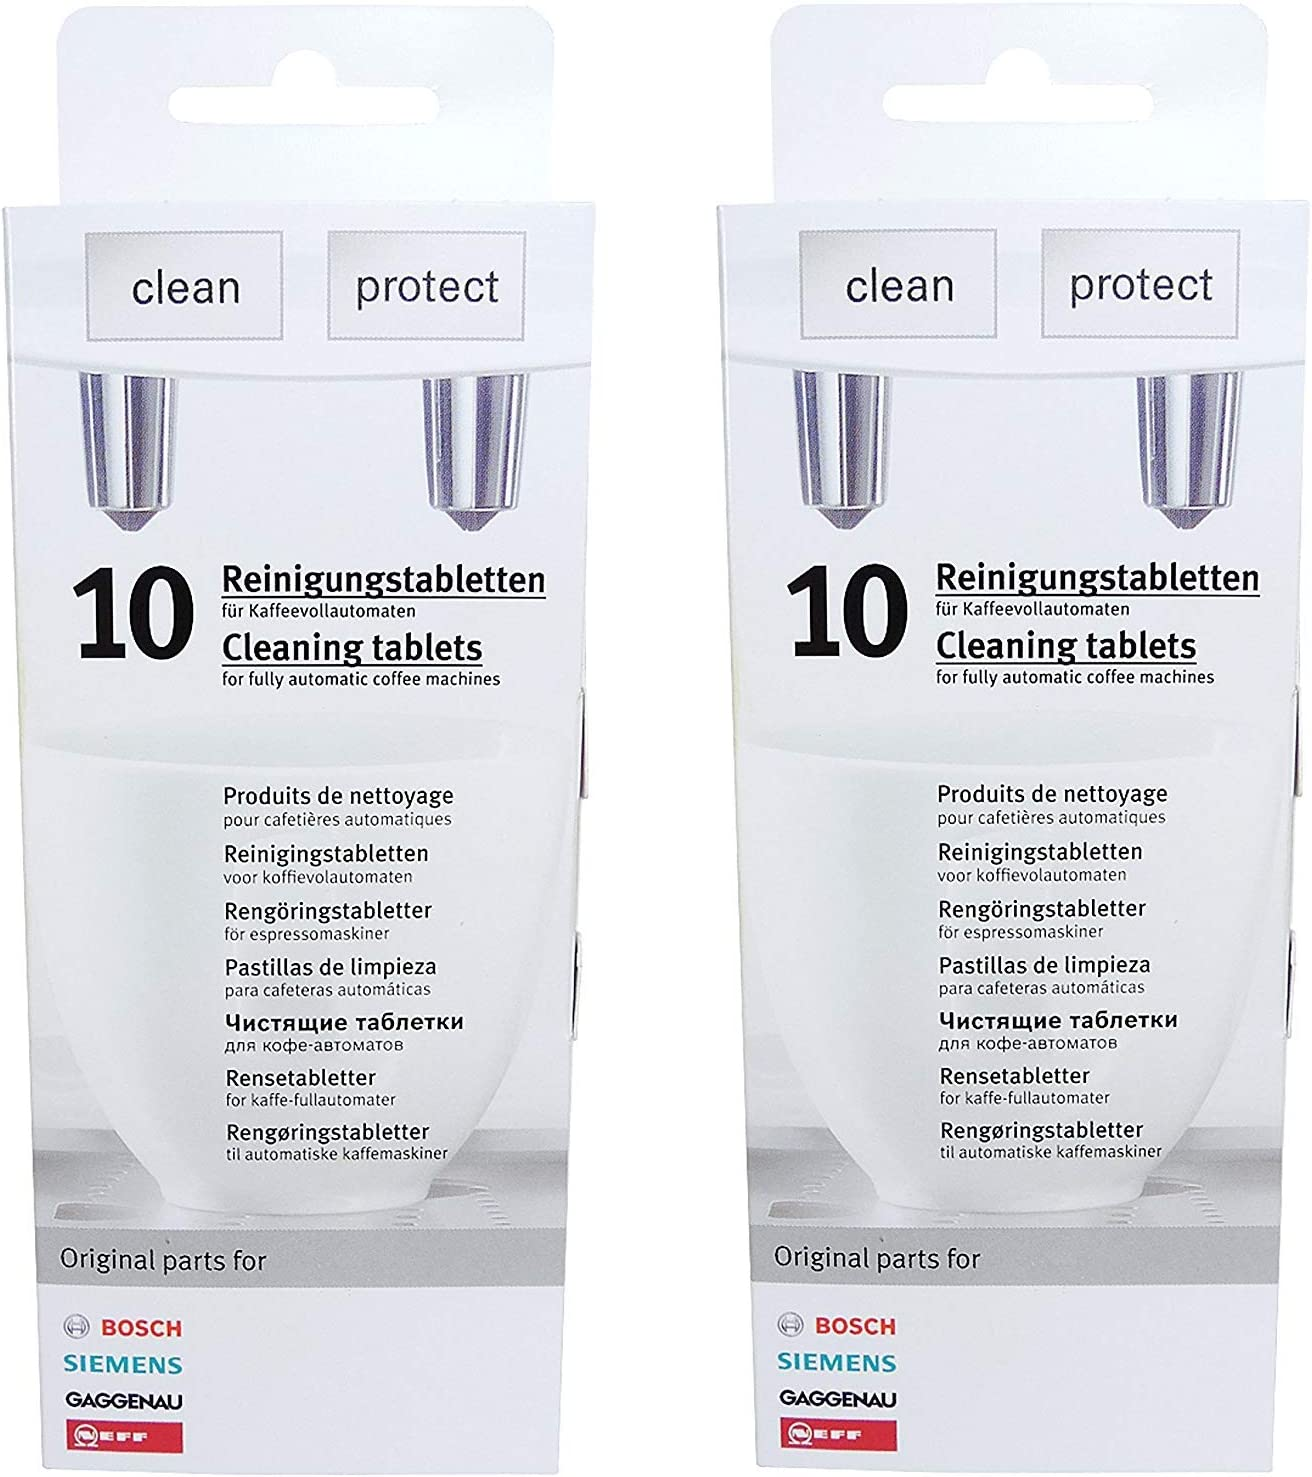 2 Pack Of Cleaning Tablets For Coffee Machines Siemensboschneffgaggenau 00311769 Replaces Tz60001310575 Tcz6001